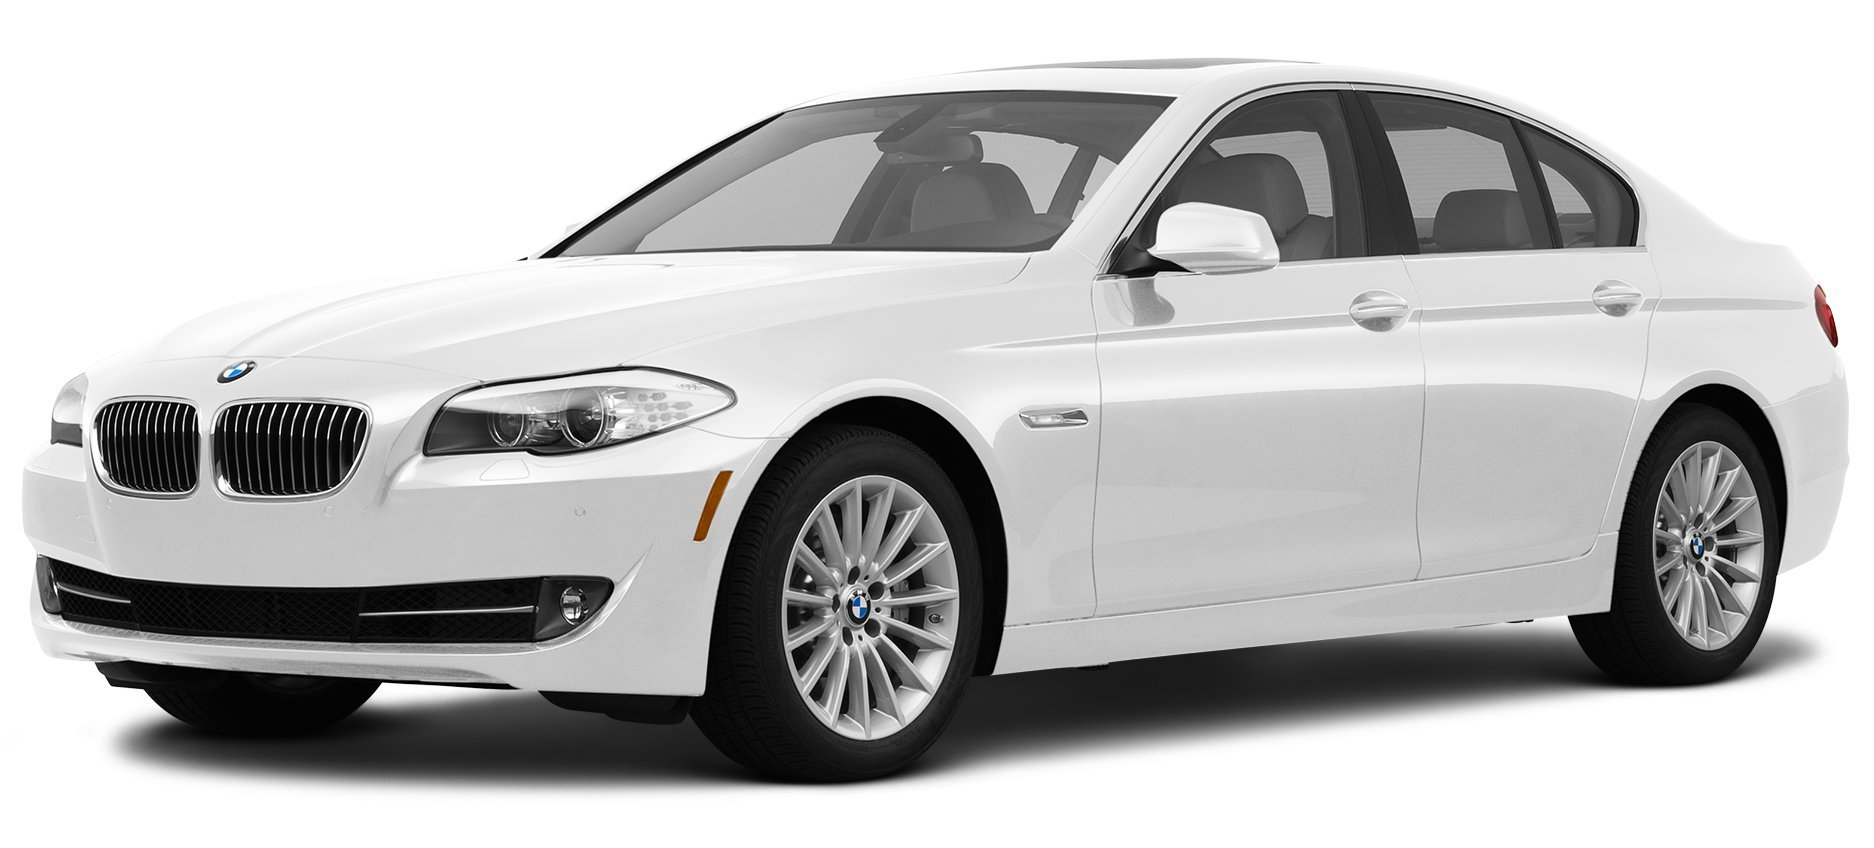 2011 Bmw 535i Reviews Images And Specs Vehicles 1941 Mercury Eight Coupe 4 Door Sedan Rear Wheel Drive